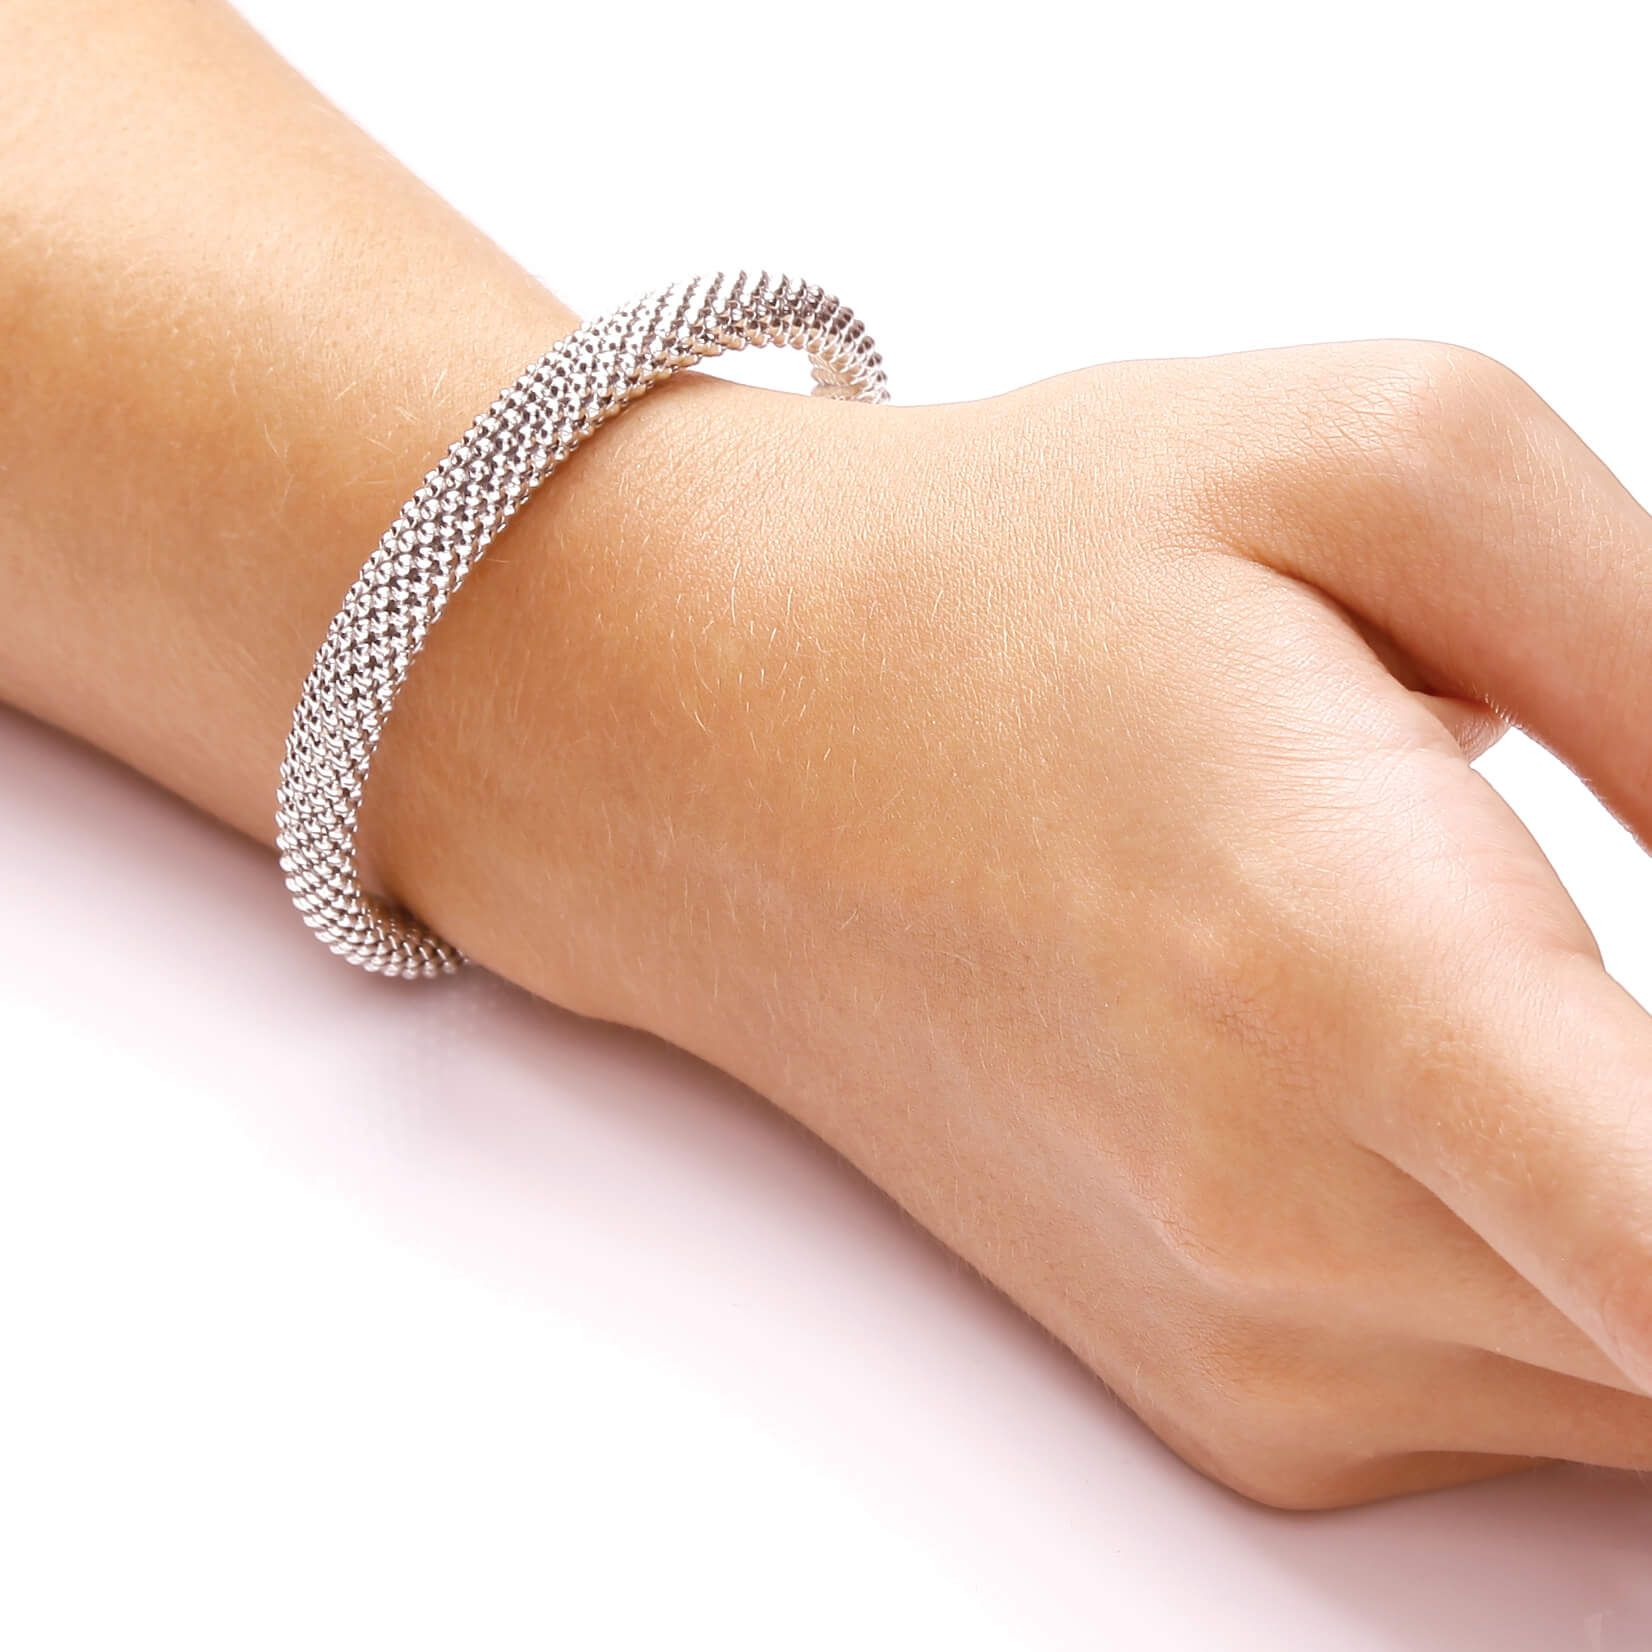 Rose Gold Coated Sterling Silver Bangle Set With White CZs Cubic Zirconia Silver